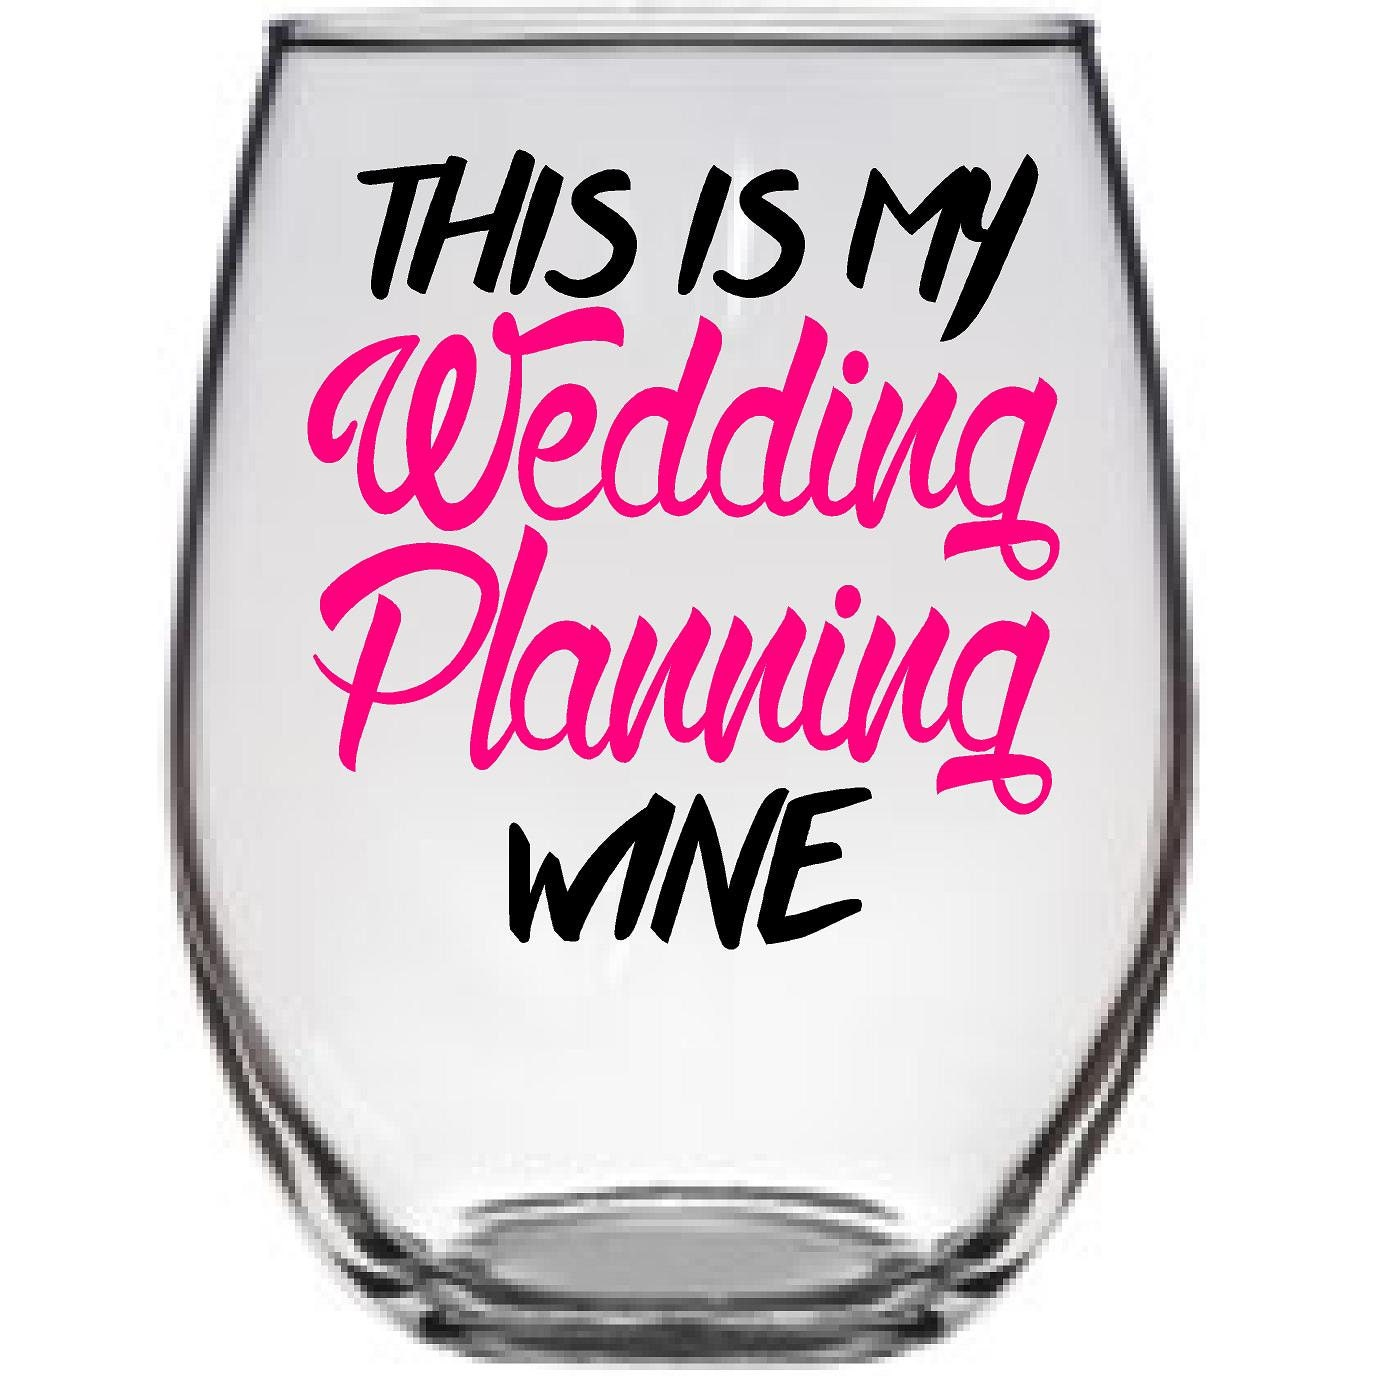 This is my wedding planning wine Bride Large Wine Glass Best | Etsy